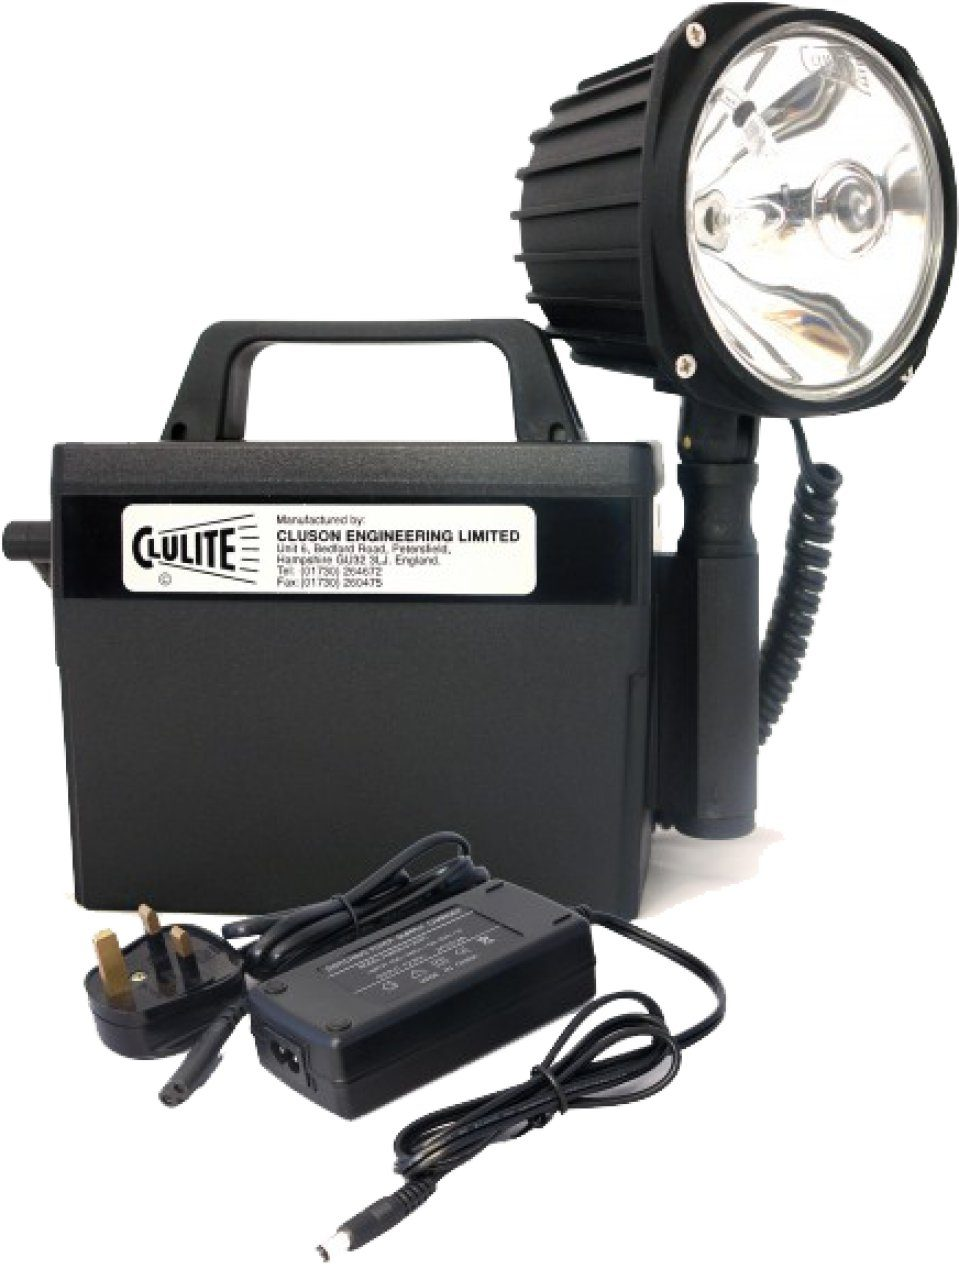 Cluson CB2-L1 Clubman Deluxe Li-Ion 8.8Ah High-Power Lamp